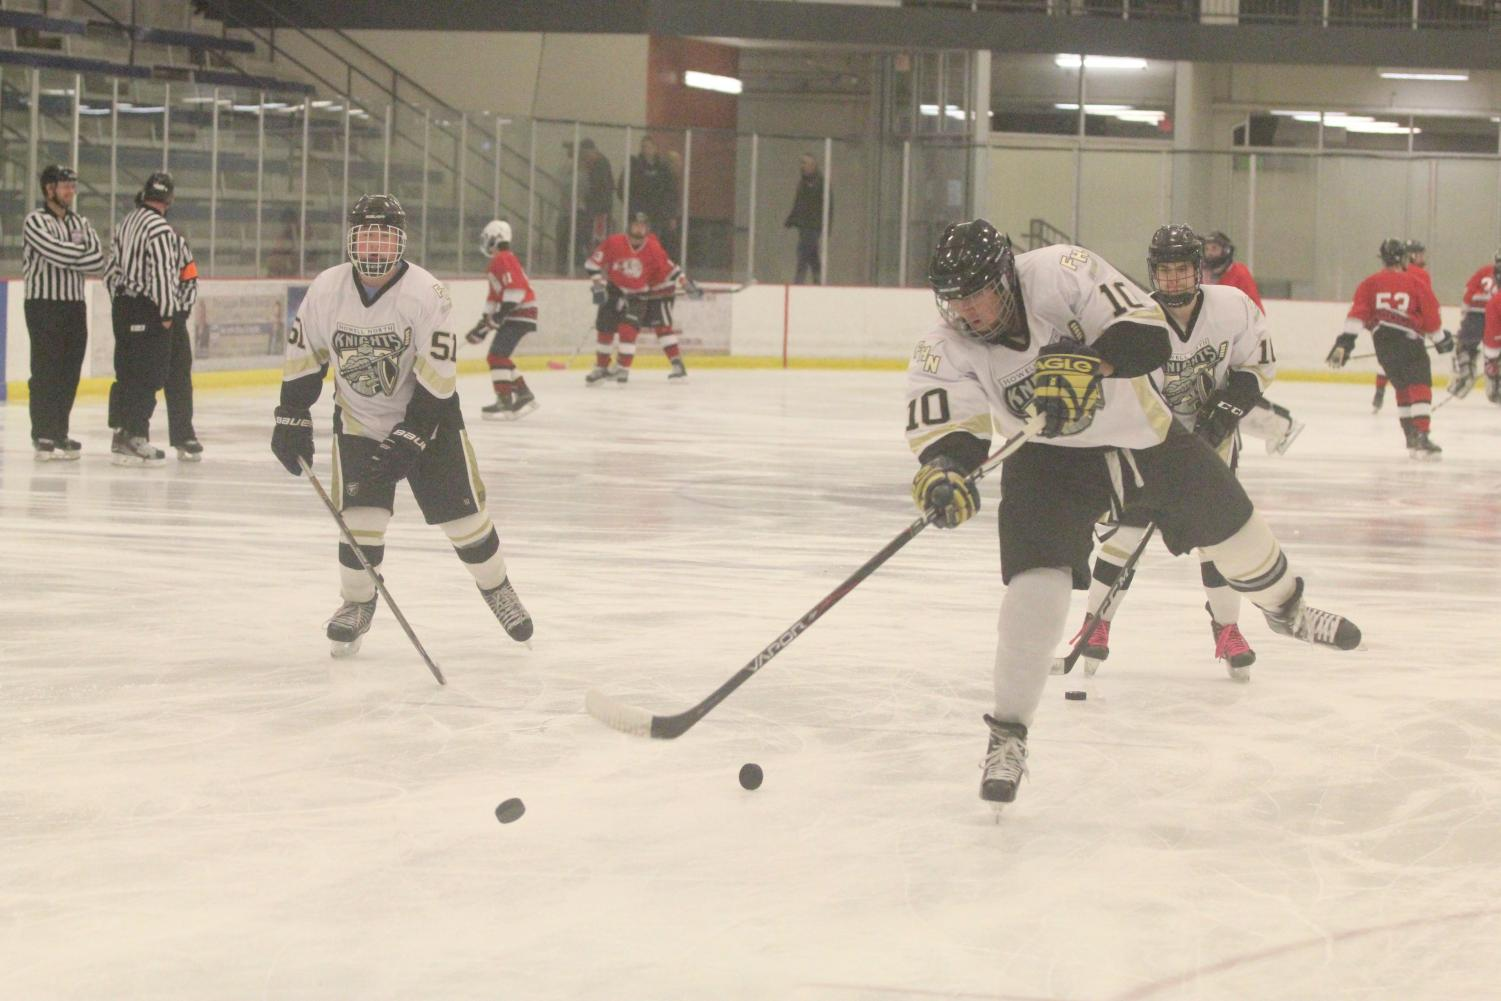 Senior Kurt Springli (#10) takes a shot on goal with fellow senior Jacob Casey watching in the background in warmups ahead of FHN's varsity hockey game vs. FZS on 11/10.